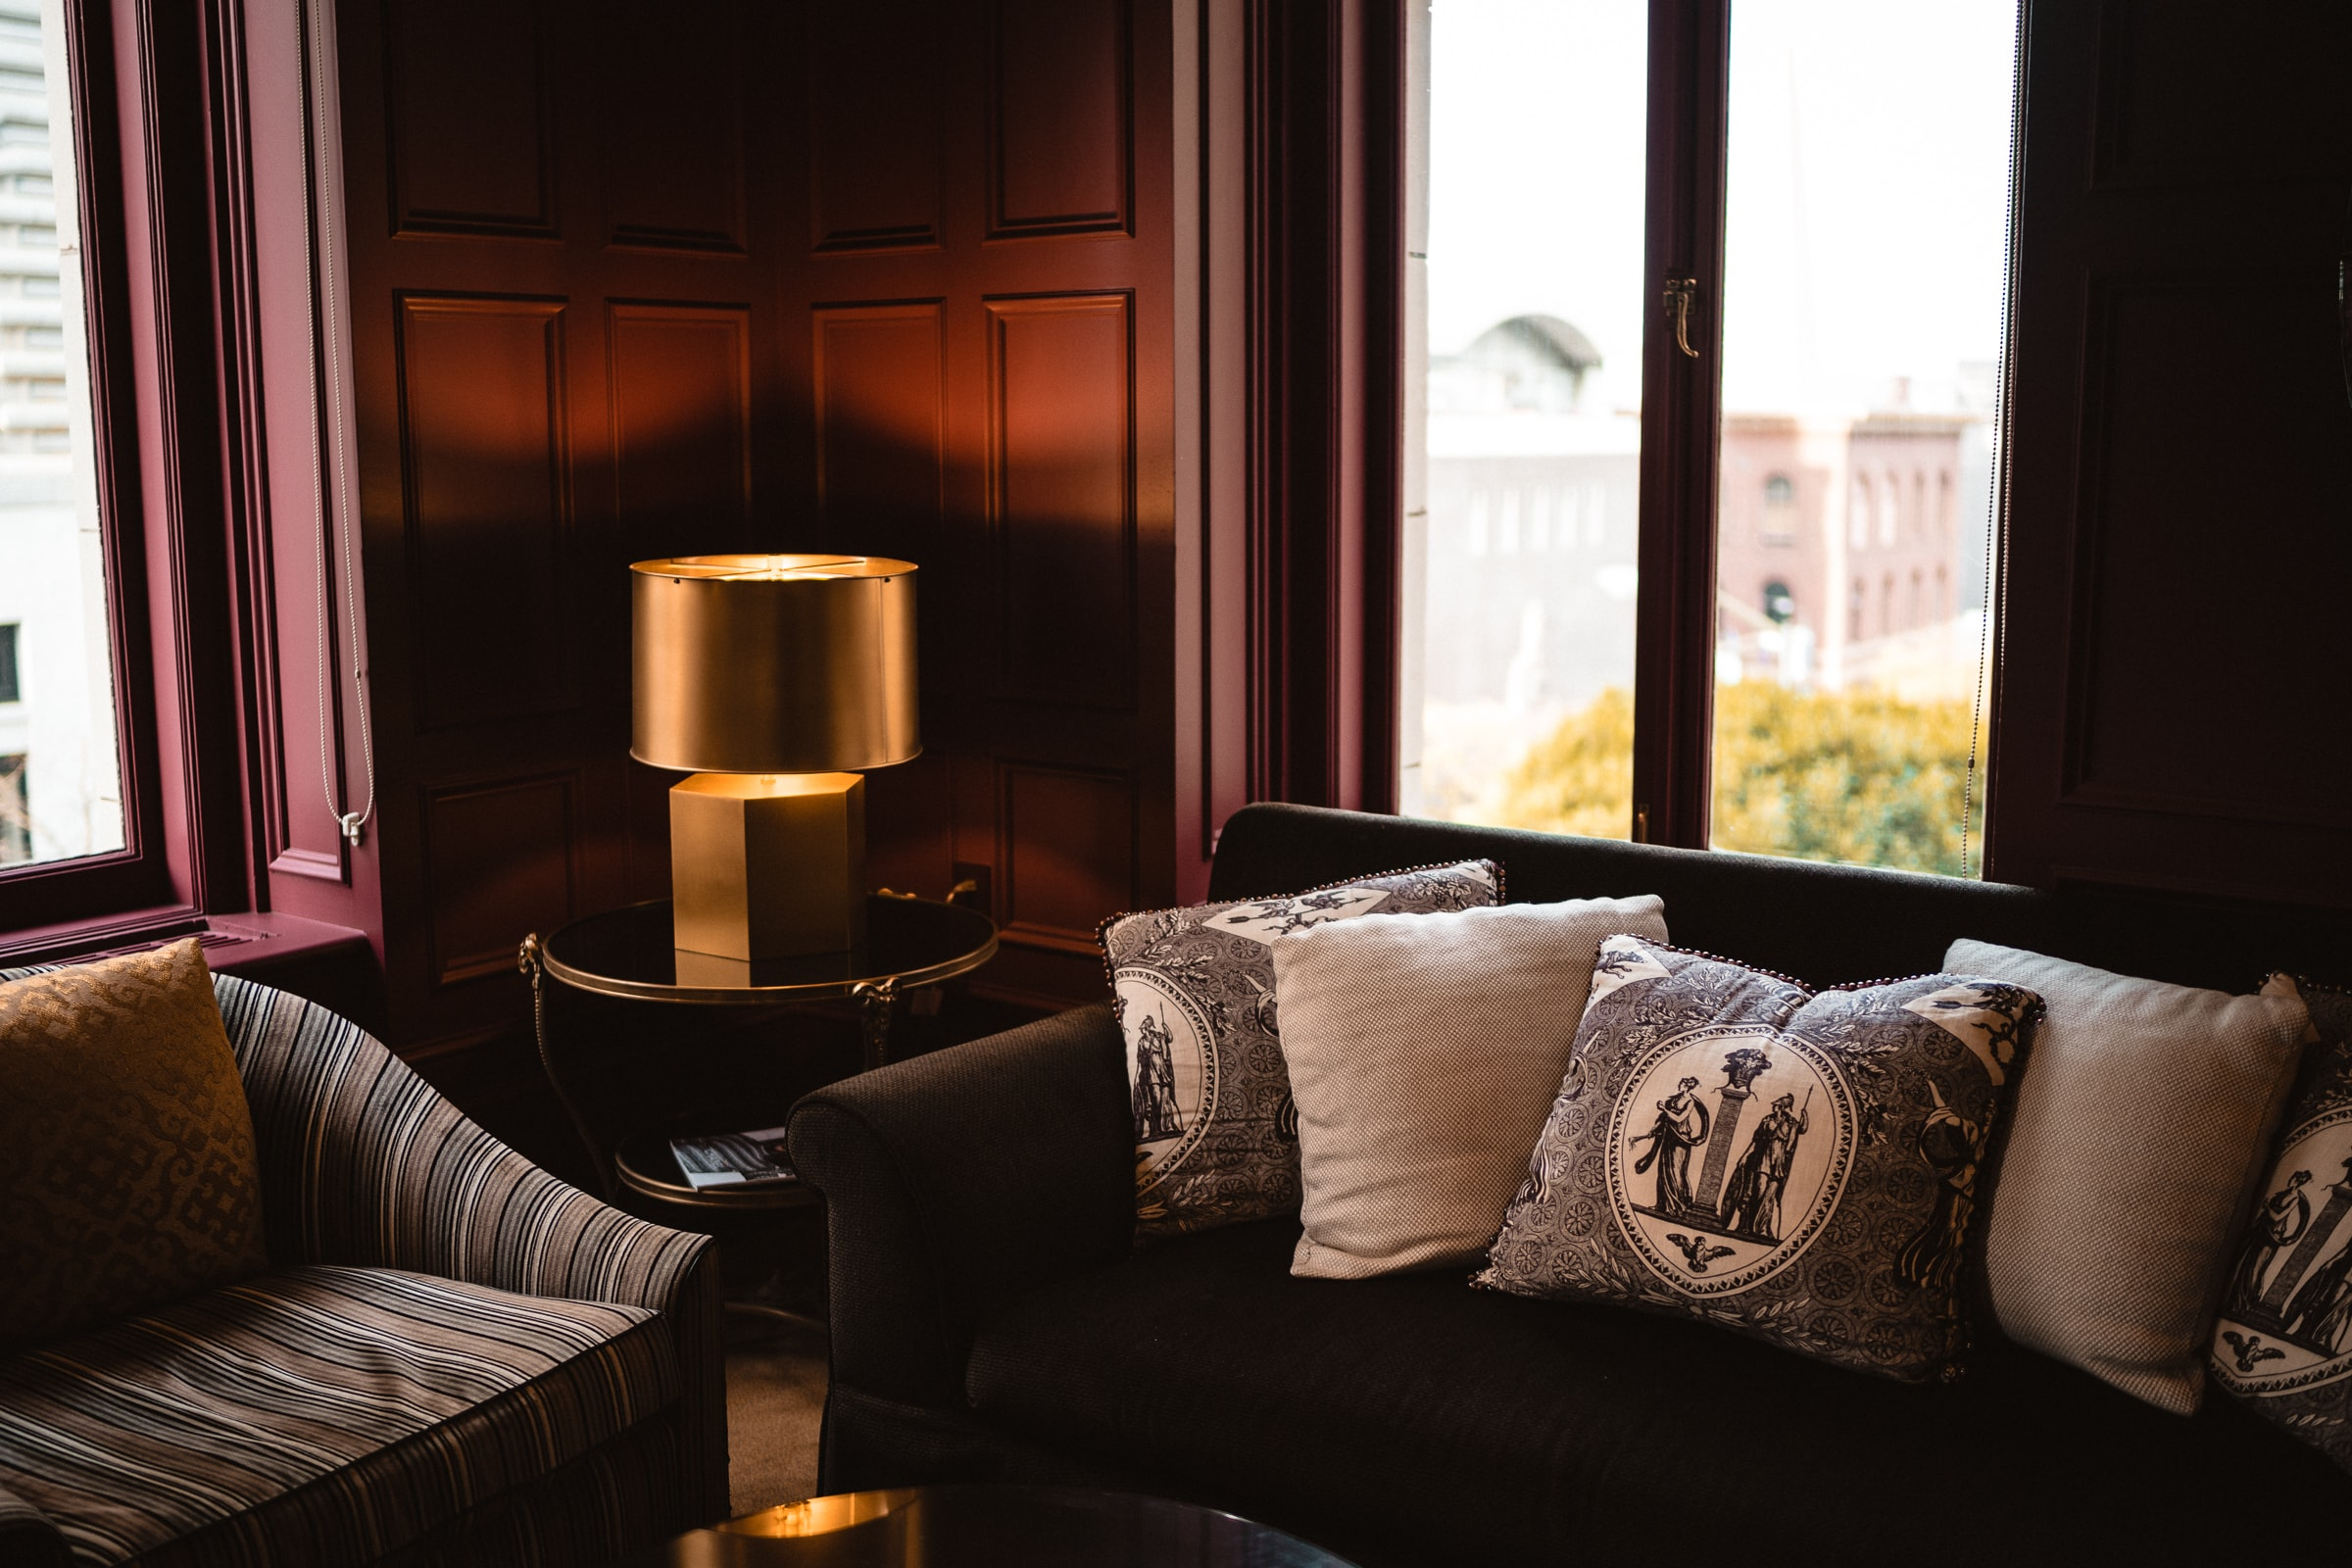 Corner of a room with a gold lamp, two couches, and decorative pillows overlooking brick buildings